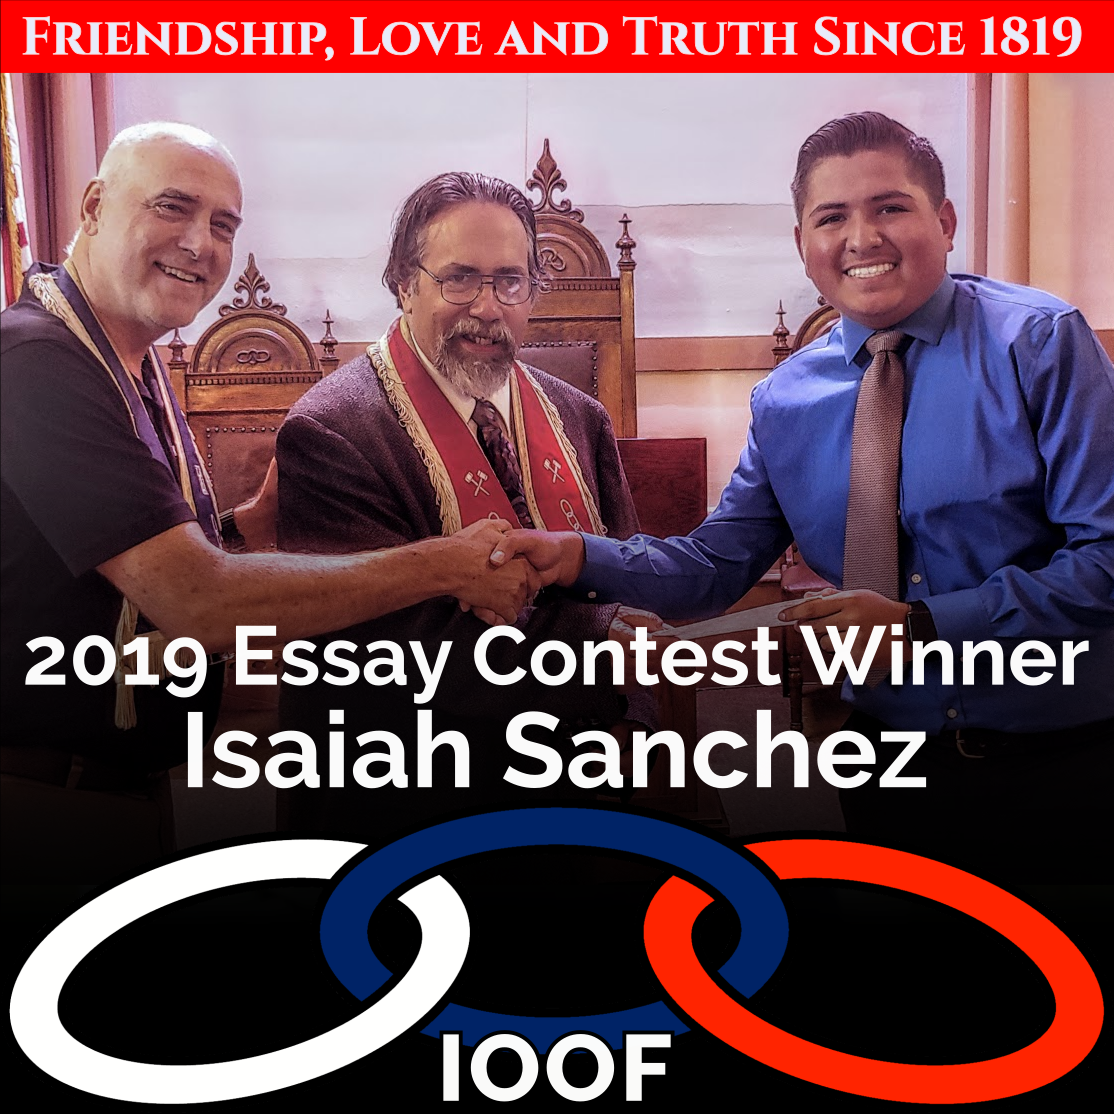 2019 Essay Contest Winner Isaiah Sanchez 1